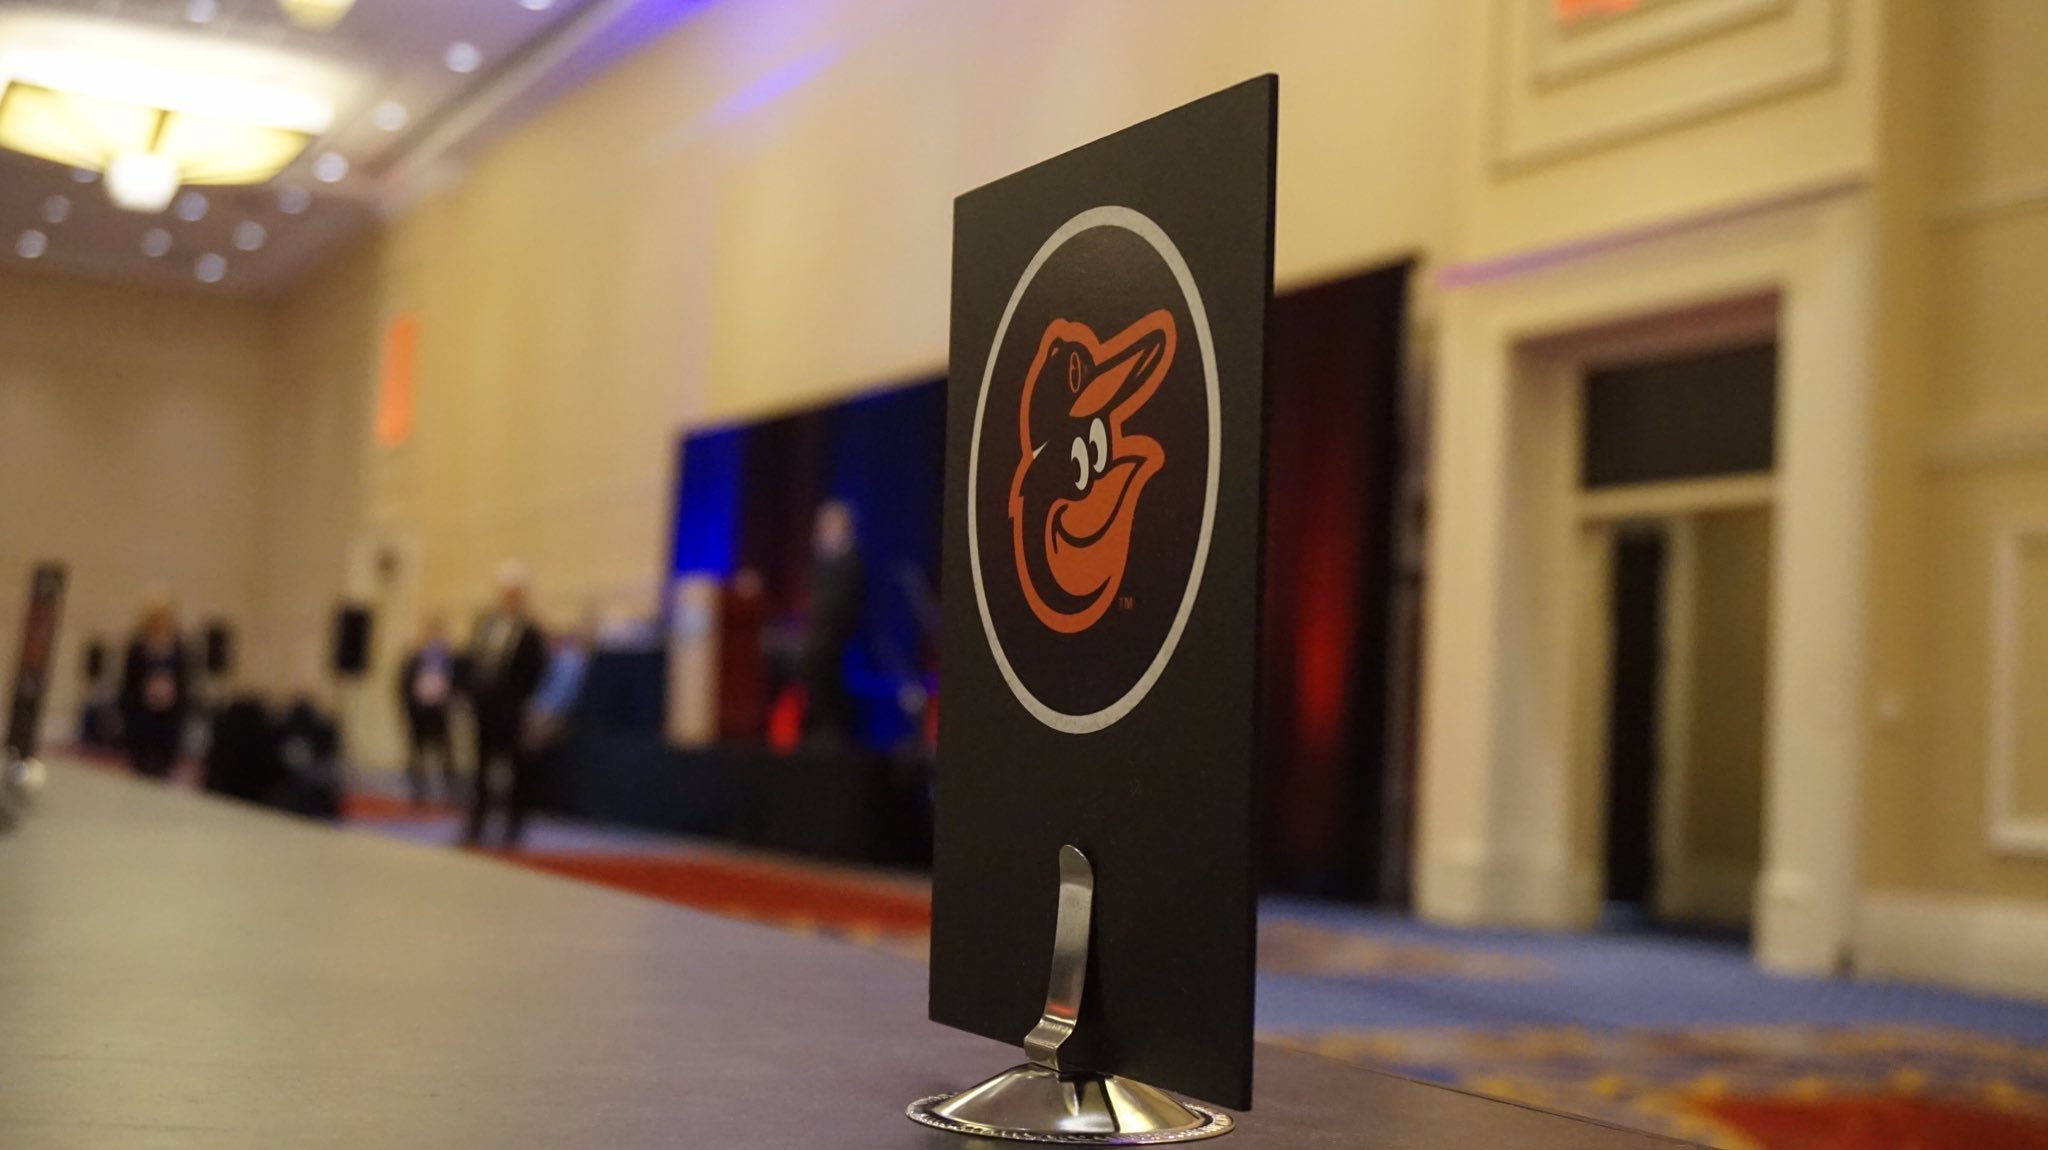 Bal-under-the-winter-meetings-spotlight-orioles-take-their-usual-spot-in-the-shadows-20161208